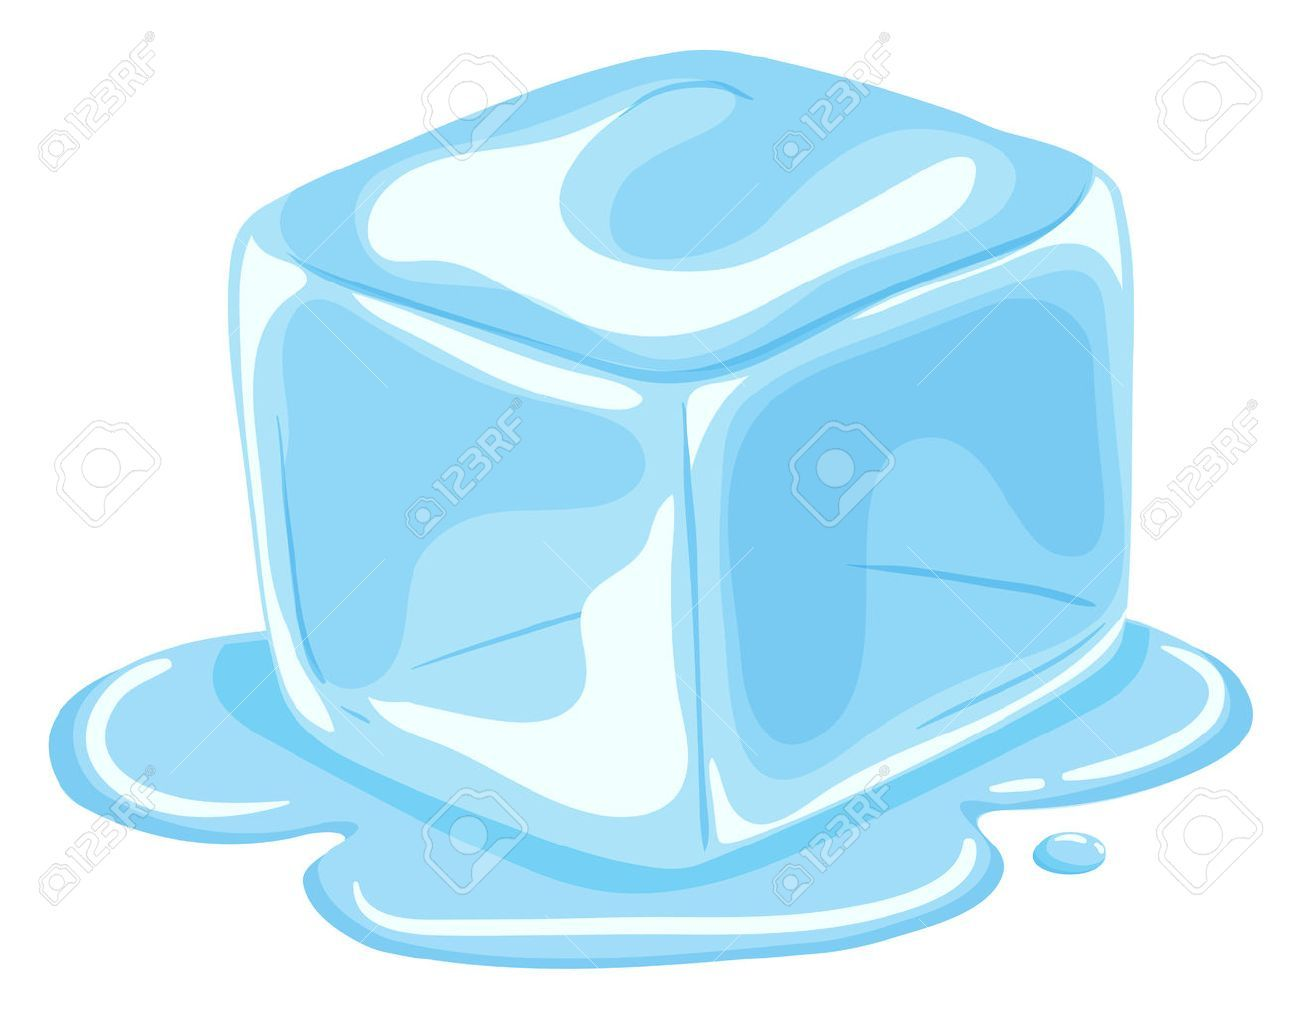 2 ice cubes clipart png free download Ice cubes clipart 2 » Clipart Portal png free download